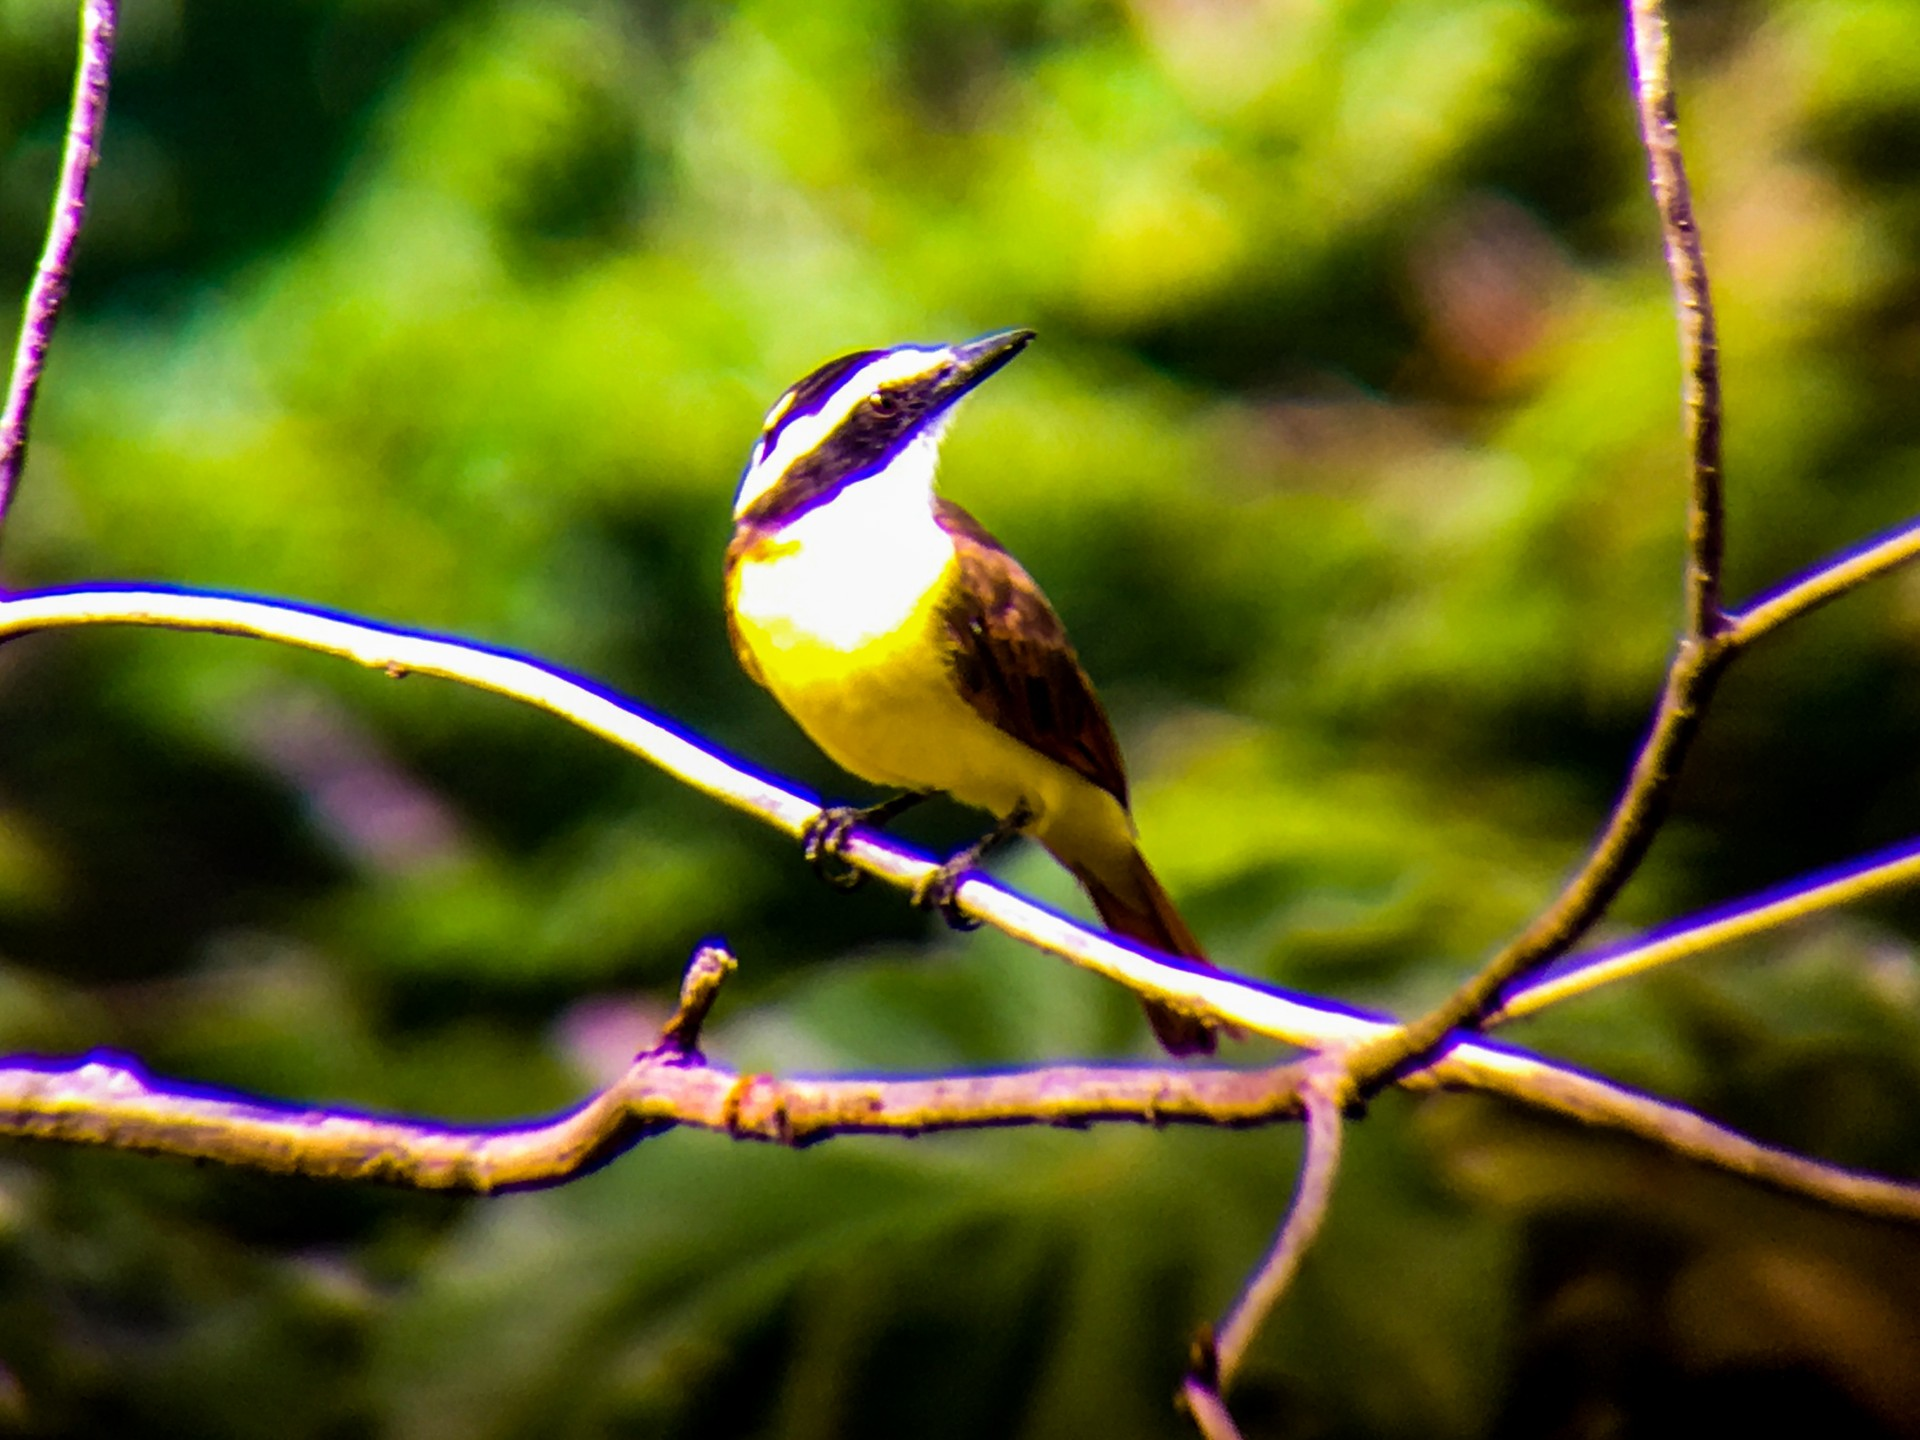 The Great Kiskadee, a large and loquacious flycatcher ubiquitous on the coasts from Mexico to Panama.